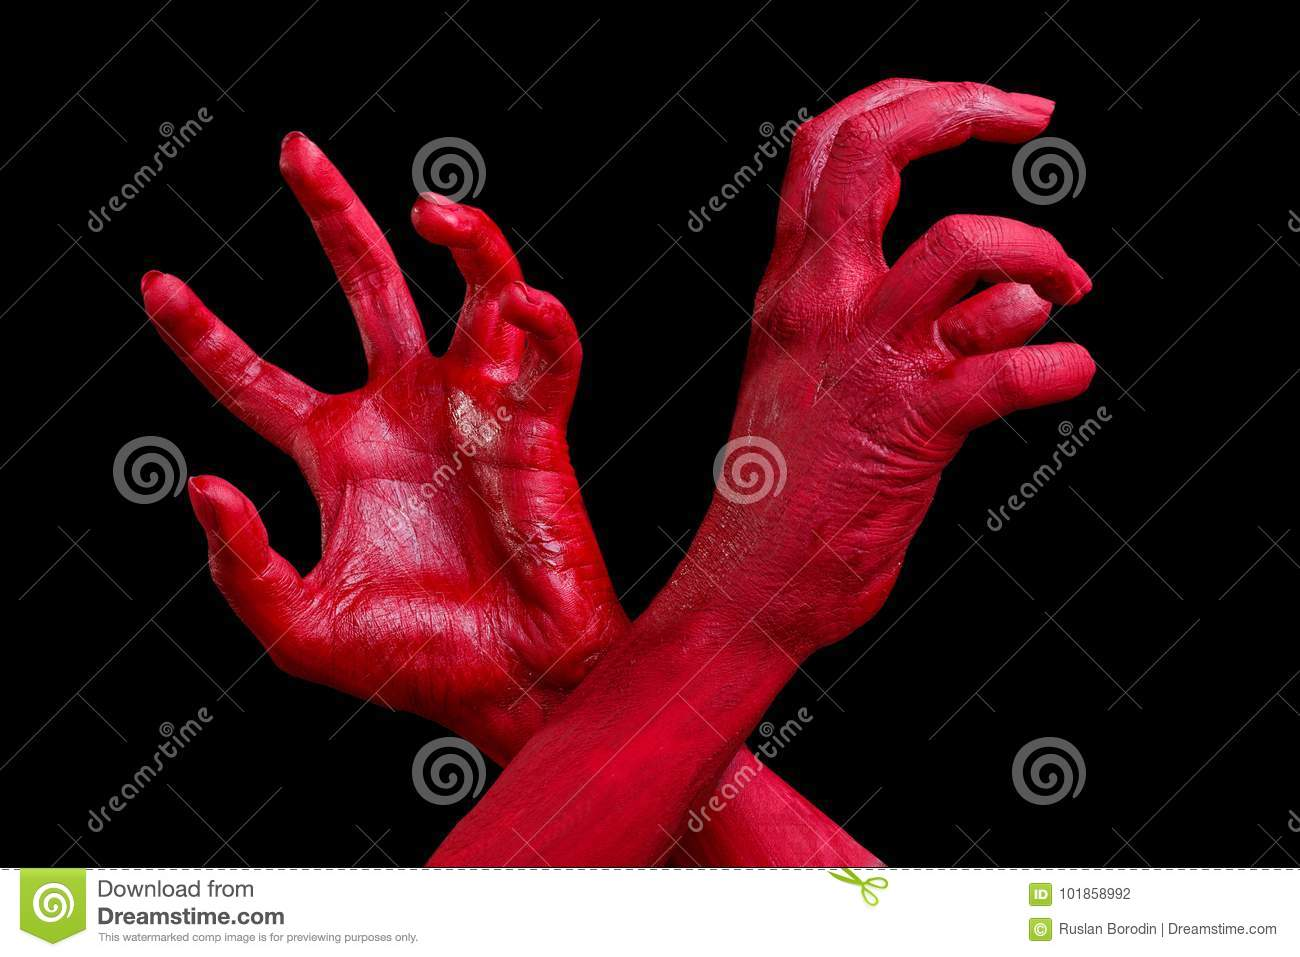 human hands painted in red are posing on a black background stock